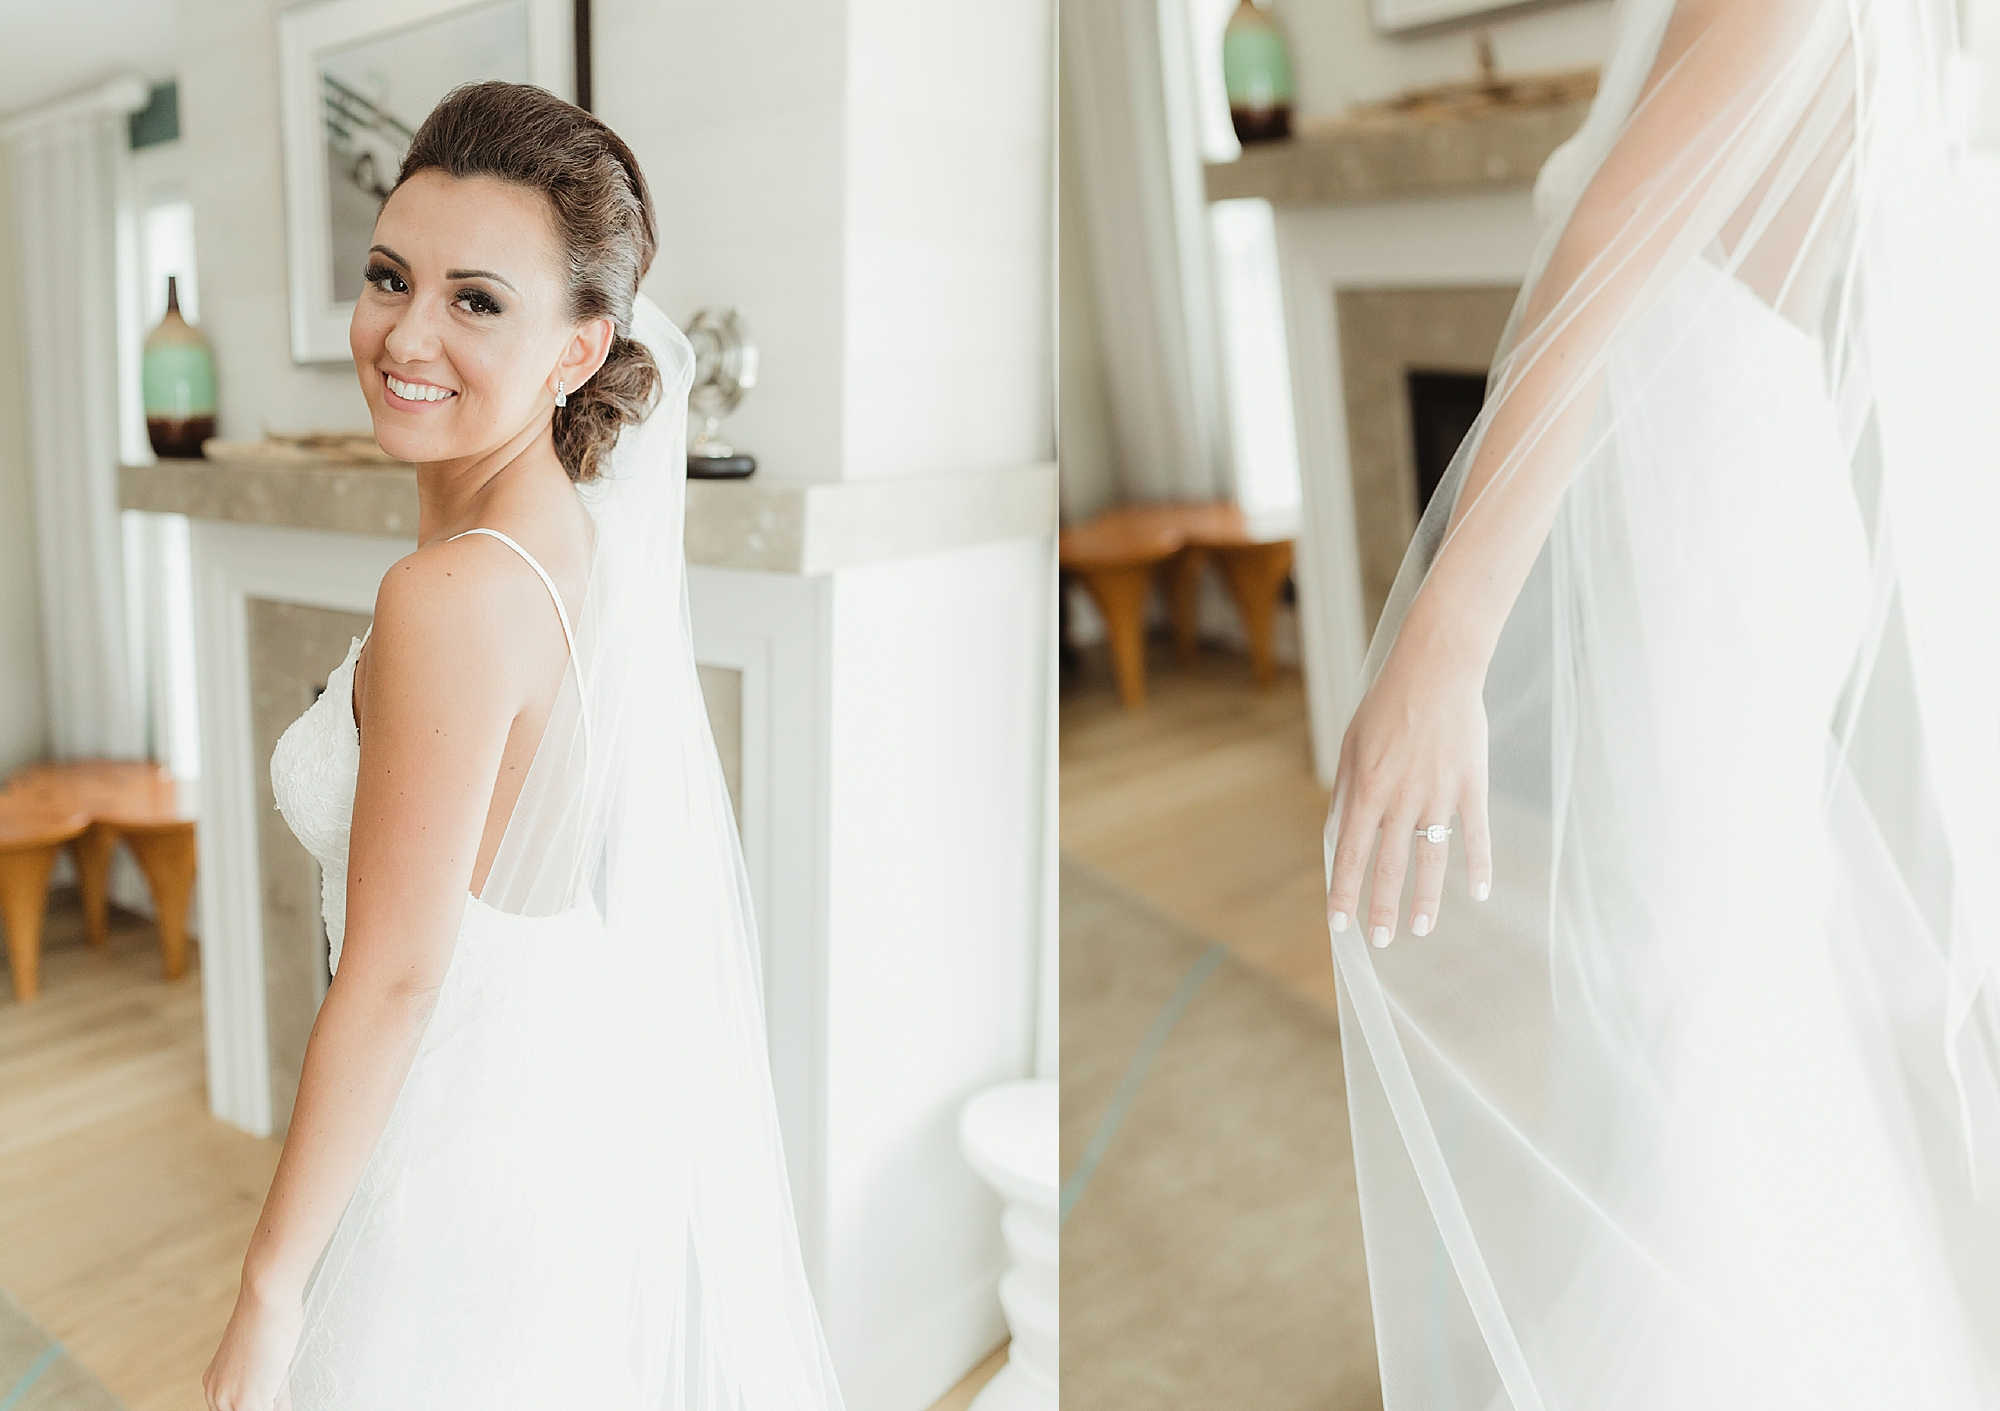 Candid and Stylish South Jersey Wedding Photography by Magdalena Studios 0016